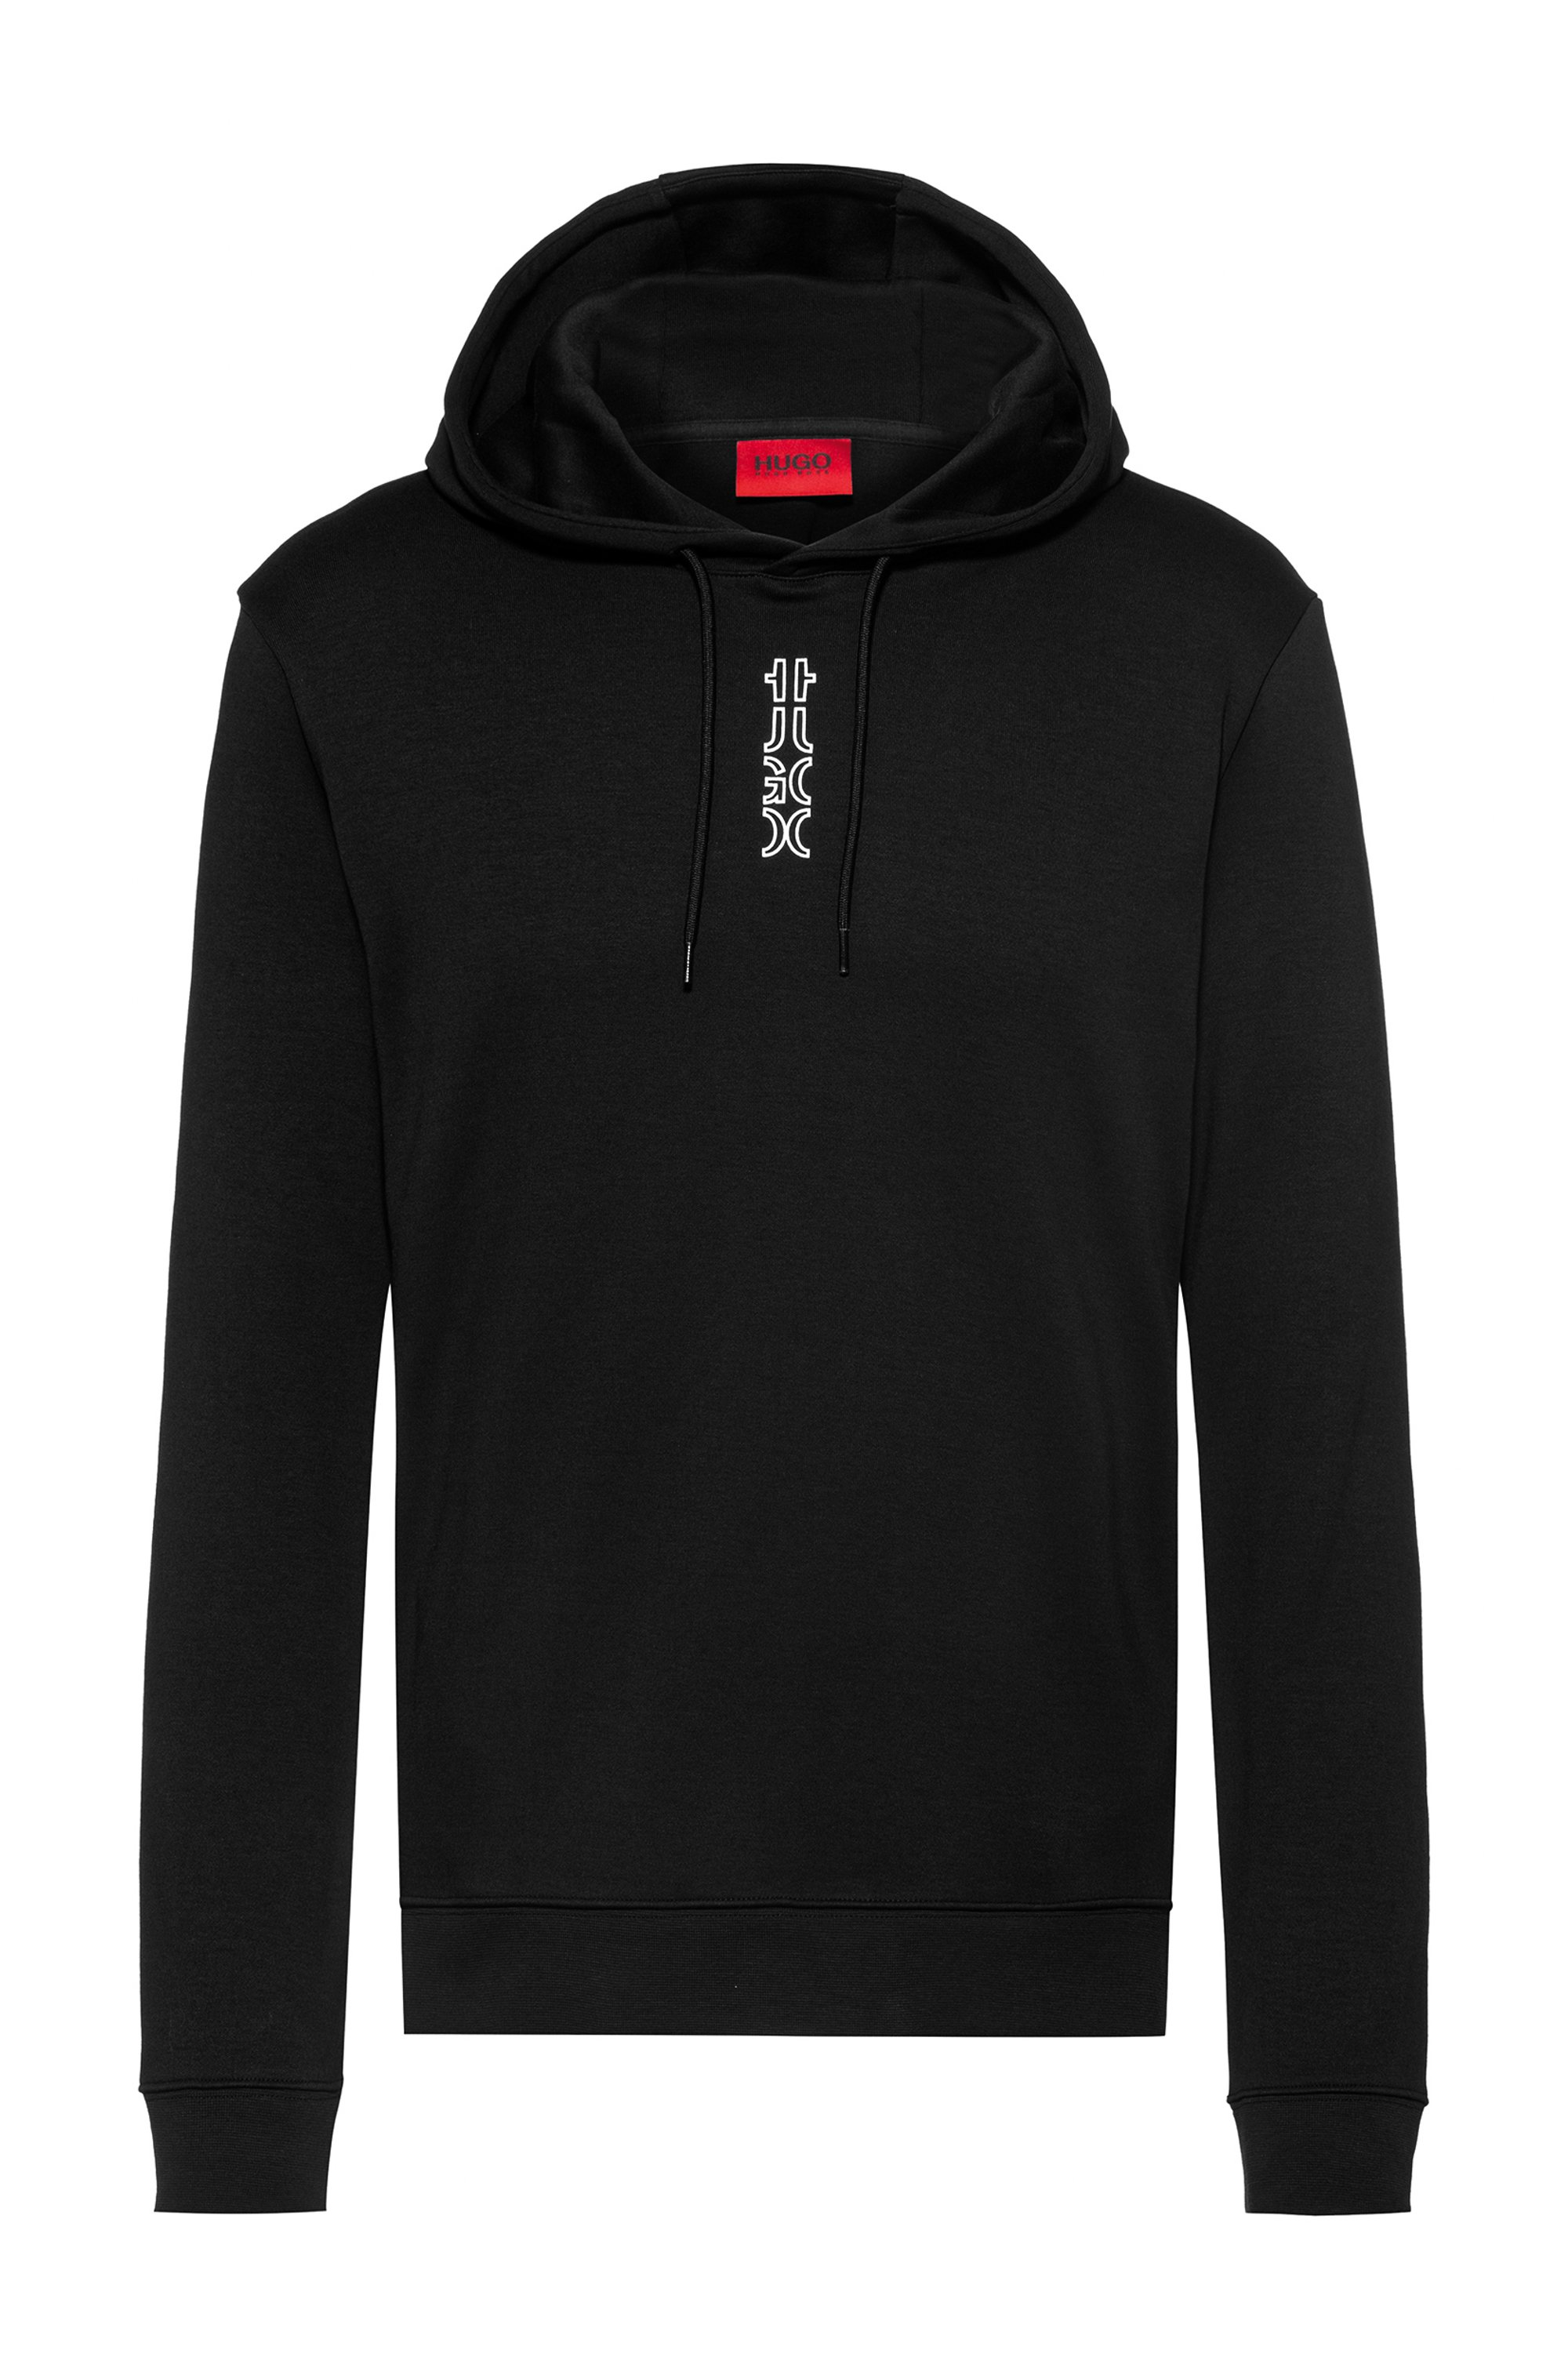 Interlock-cotton hooded sweatshirt with cropped logo, Black